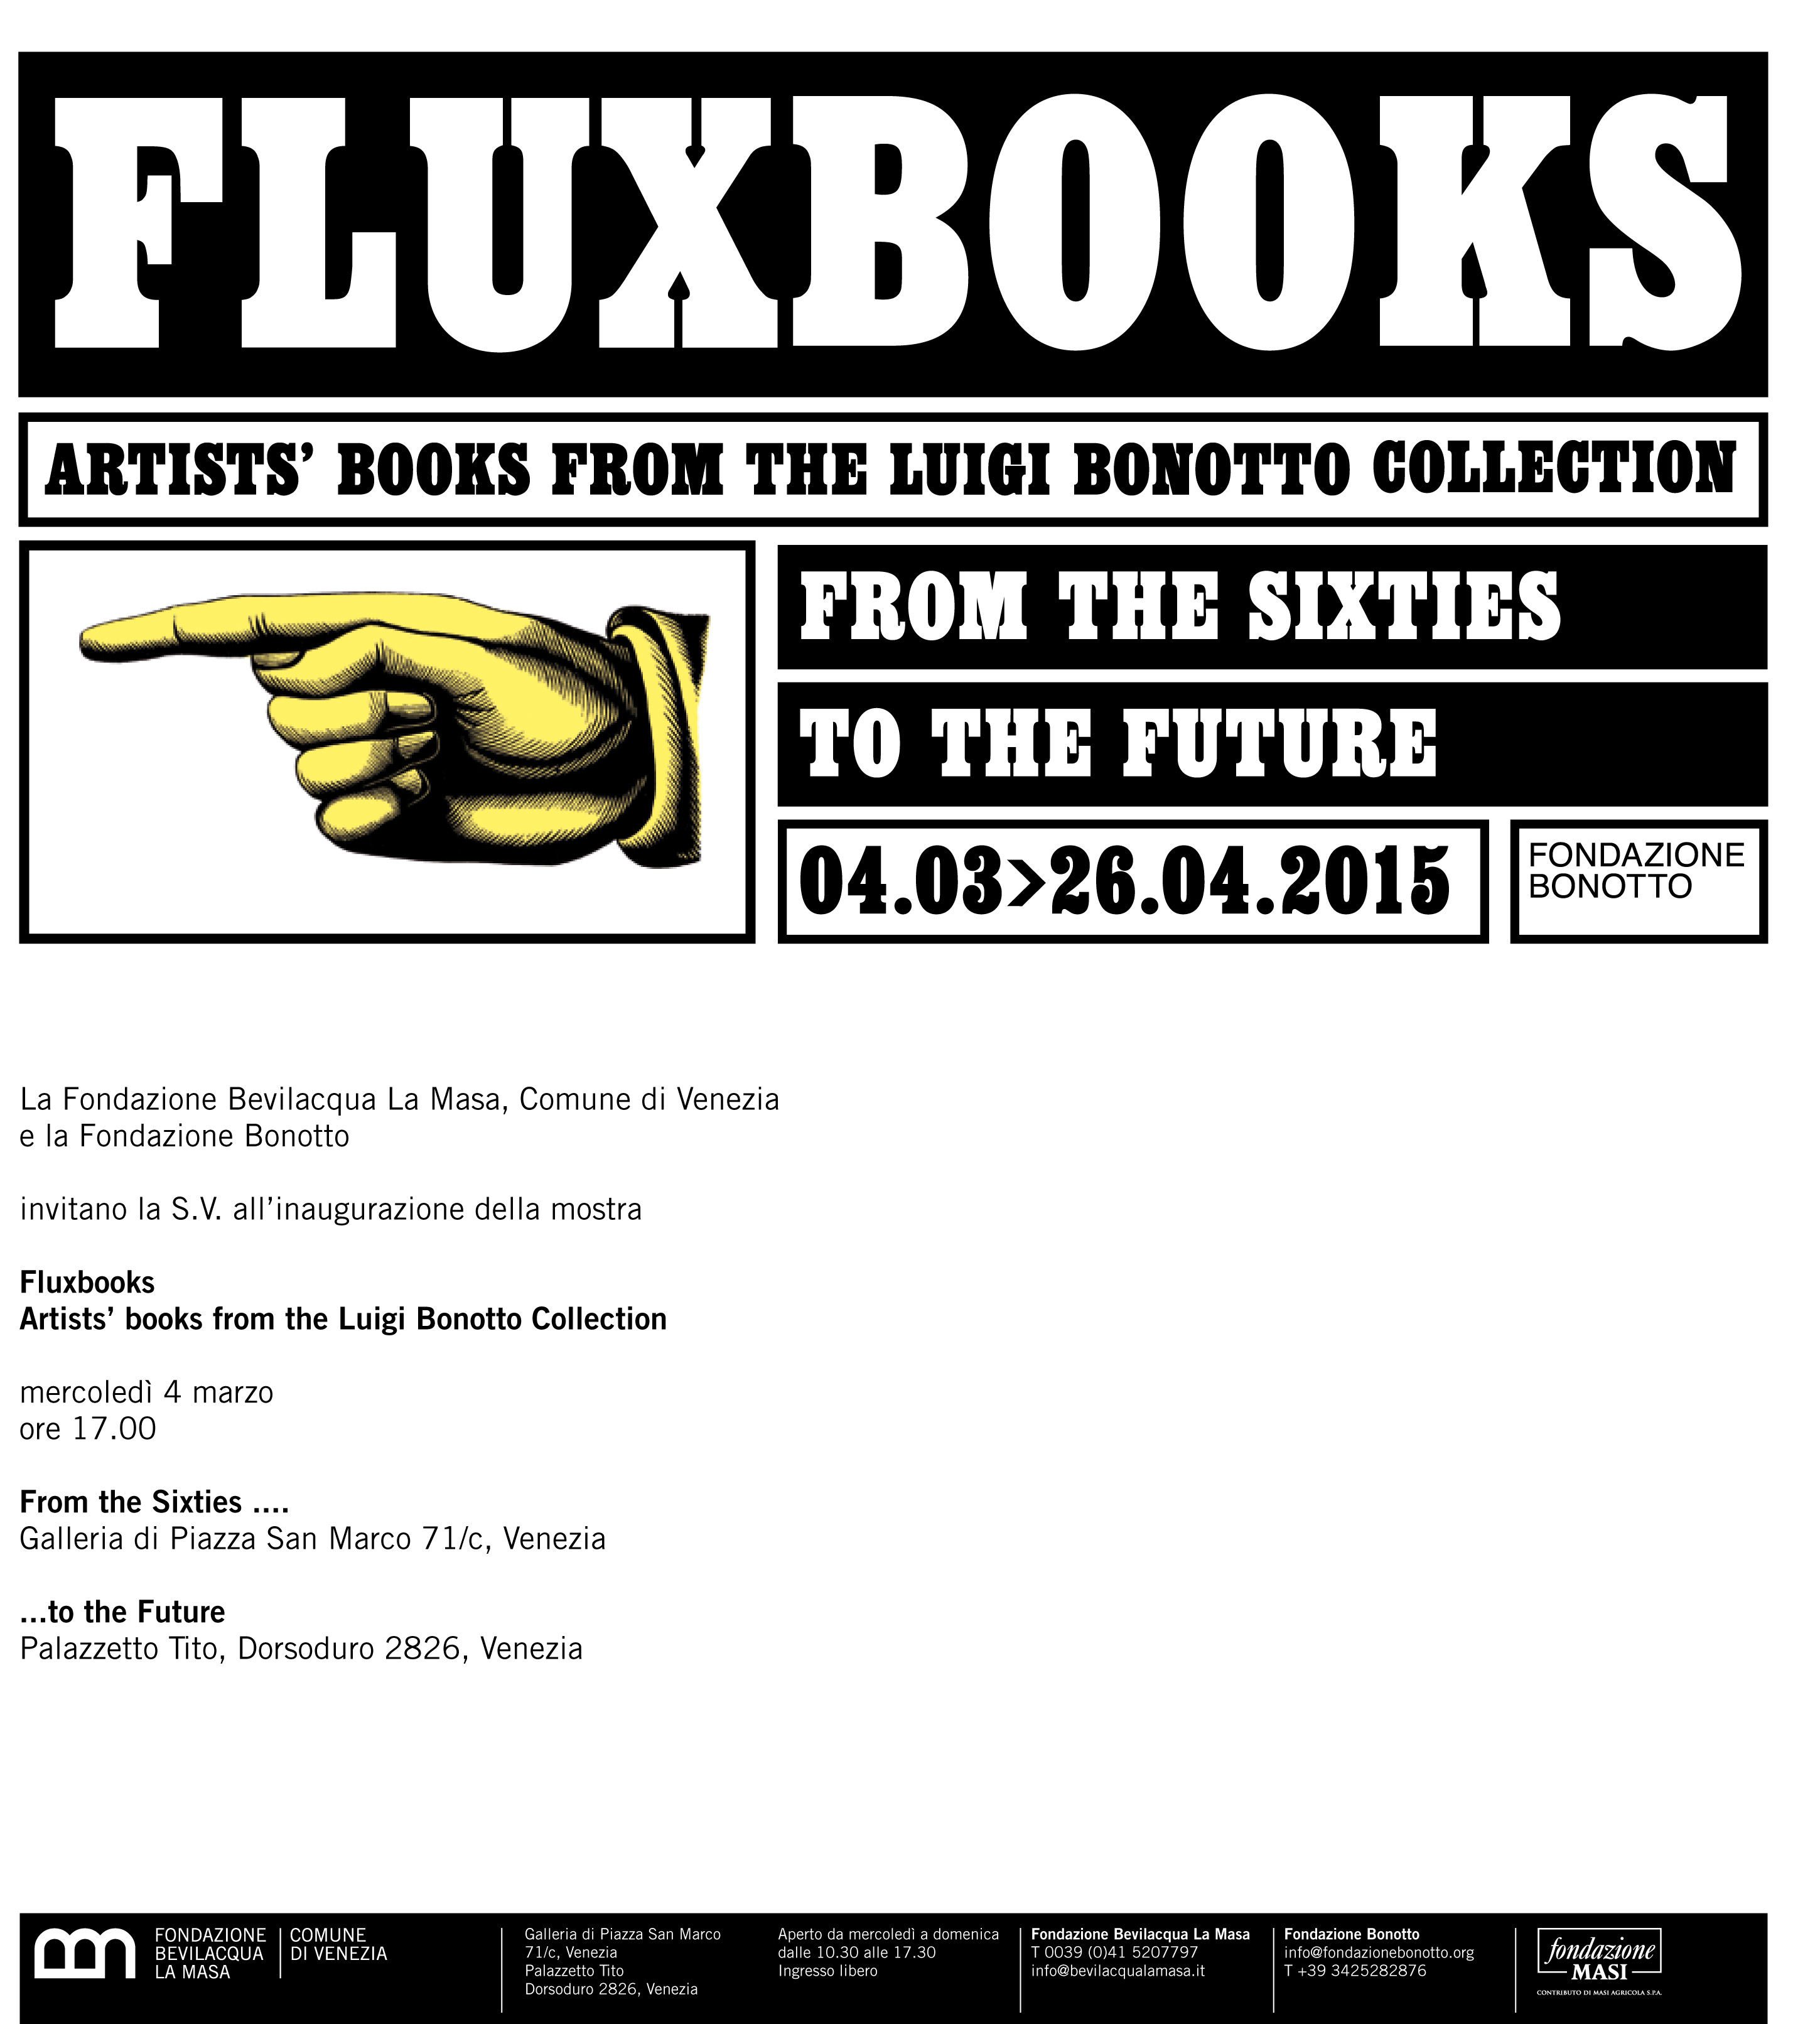 FLUXBOOKS. From the Sixties to the Future. Artists' books from the Luigi Bonotto's Collection